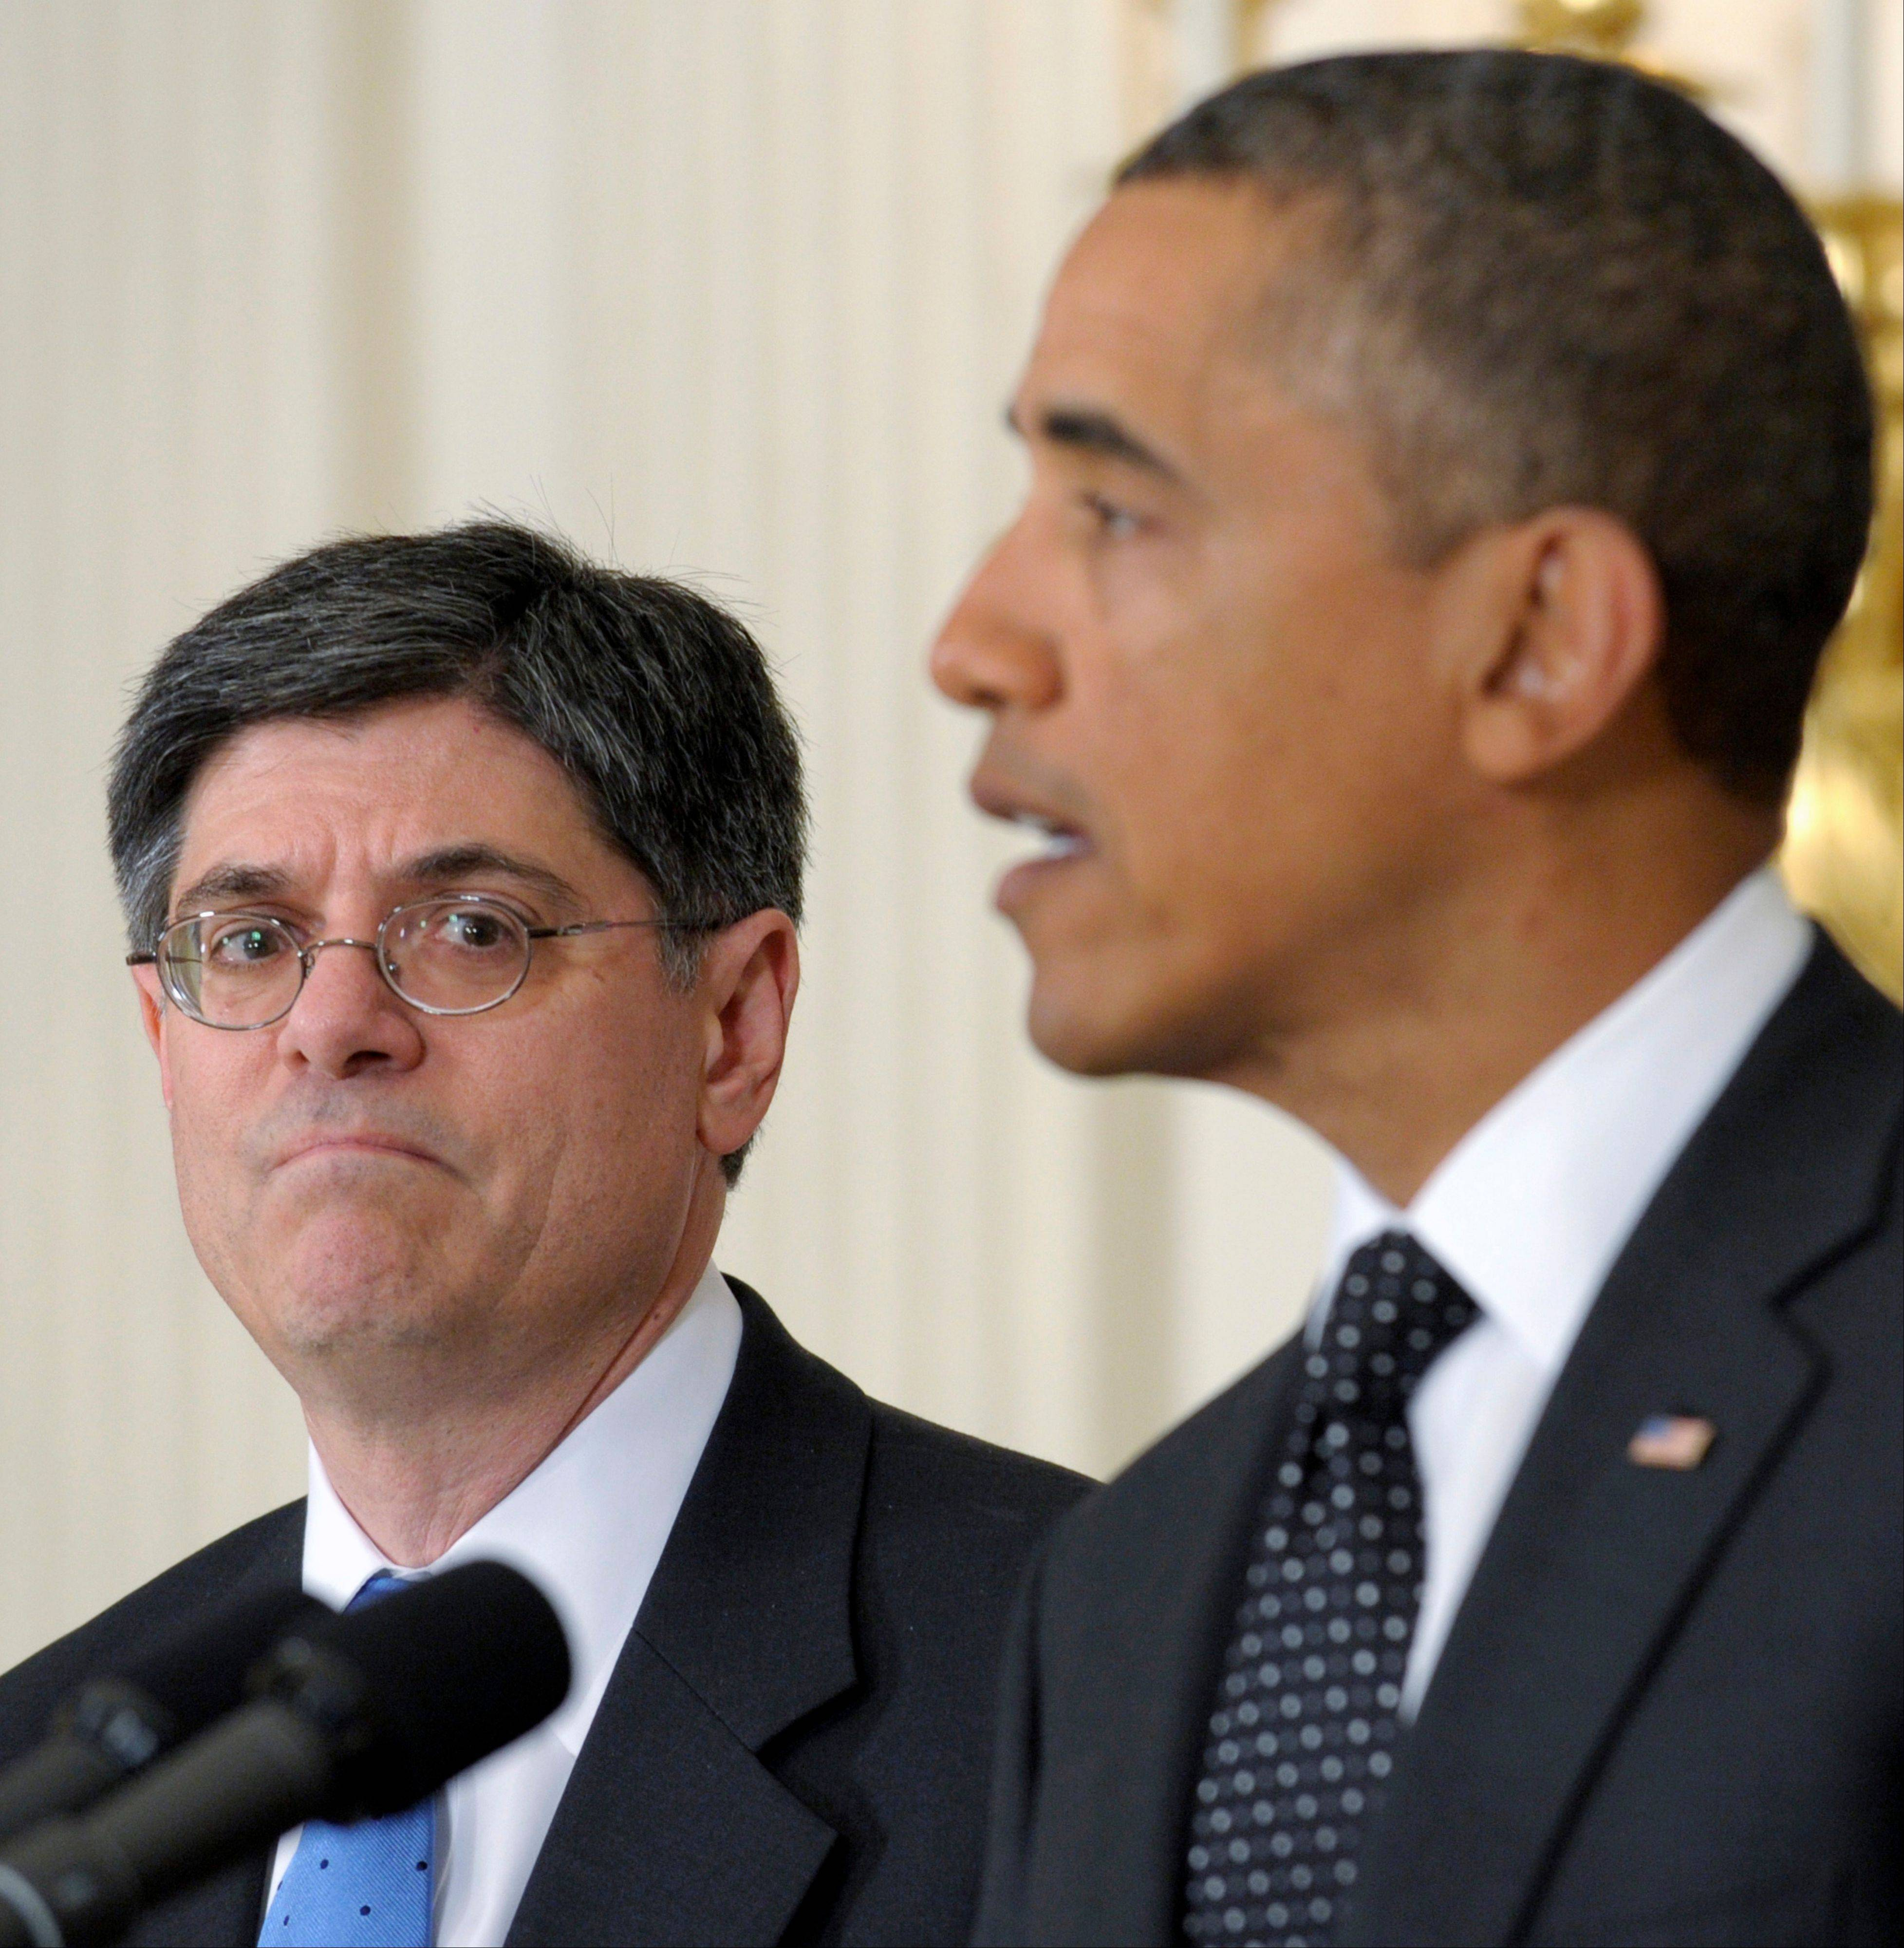 Jack Lew, current White House chief of staff, is President Barack Obama�s expected pick to lead the Treasury Department, with an announcement possible before the end of the week.